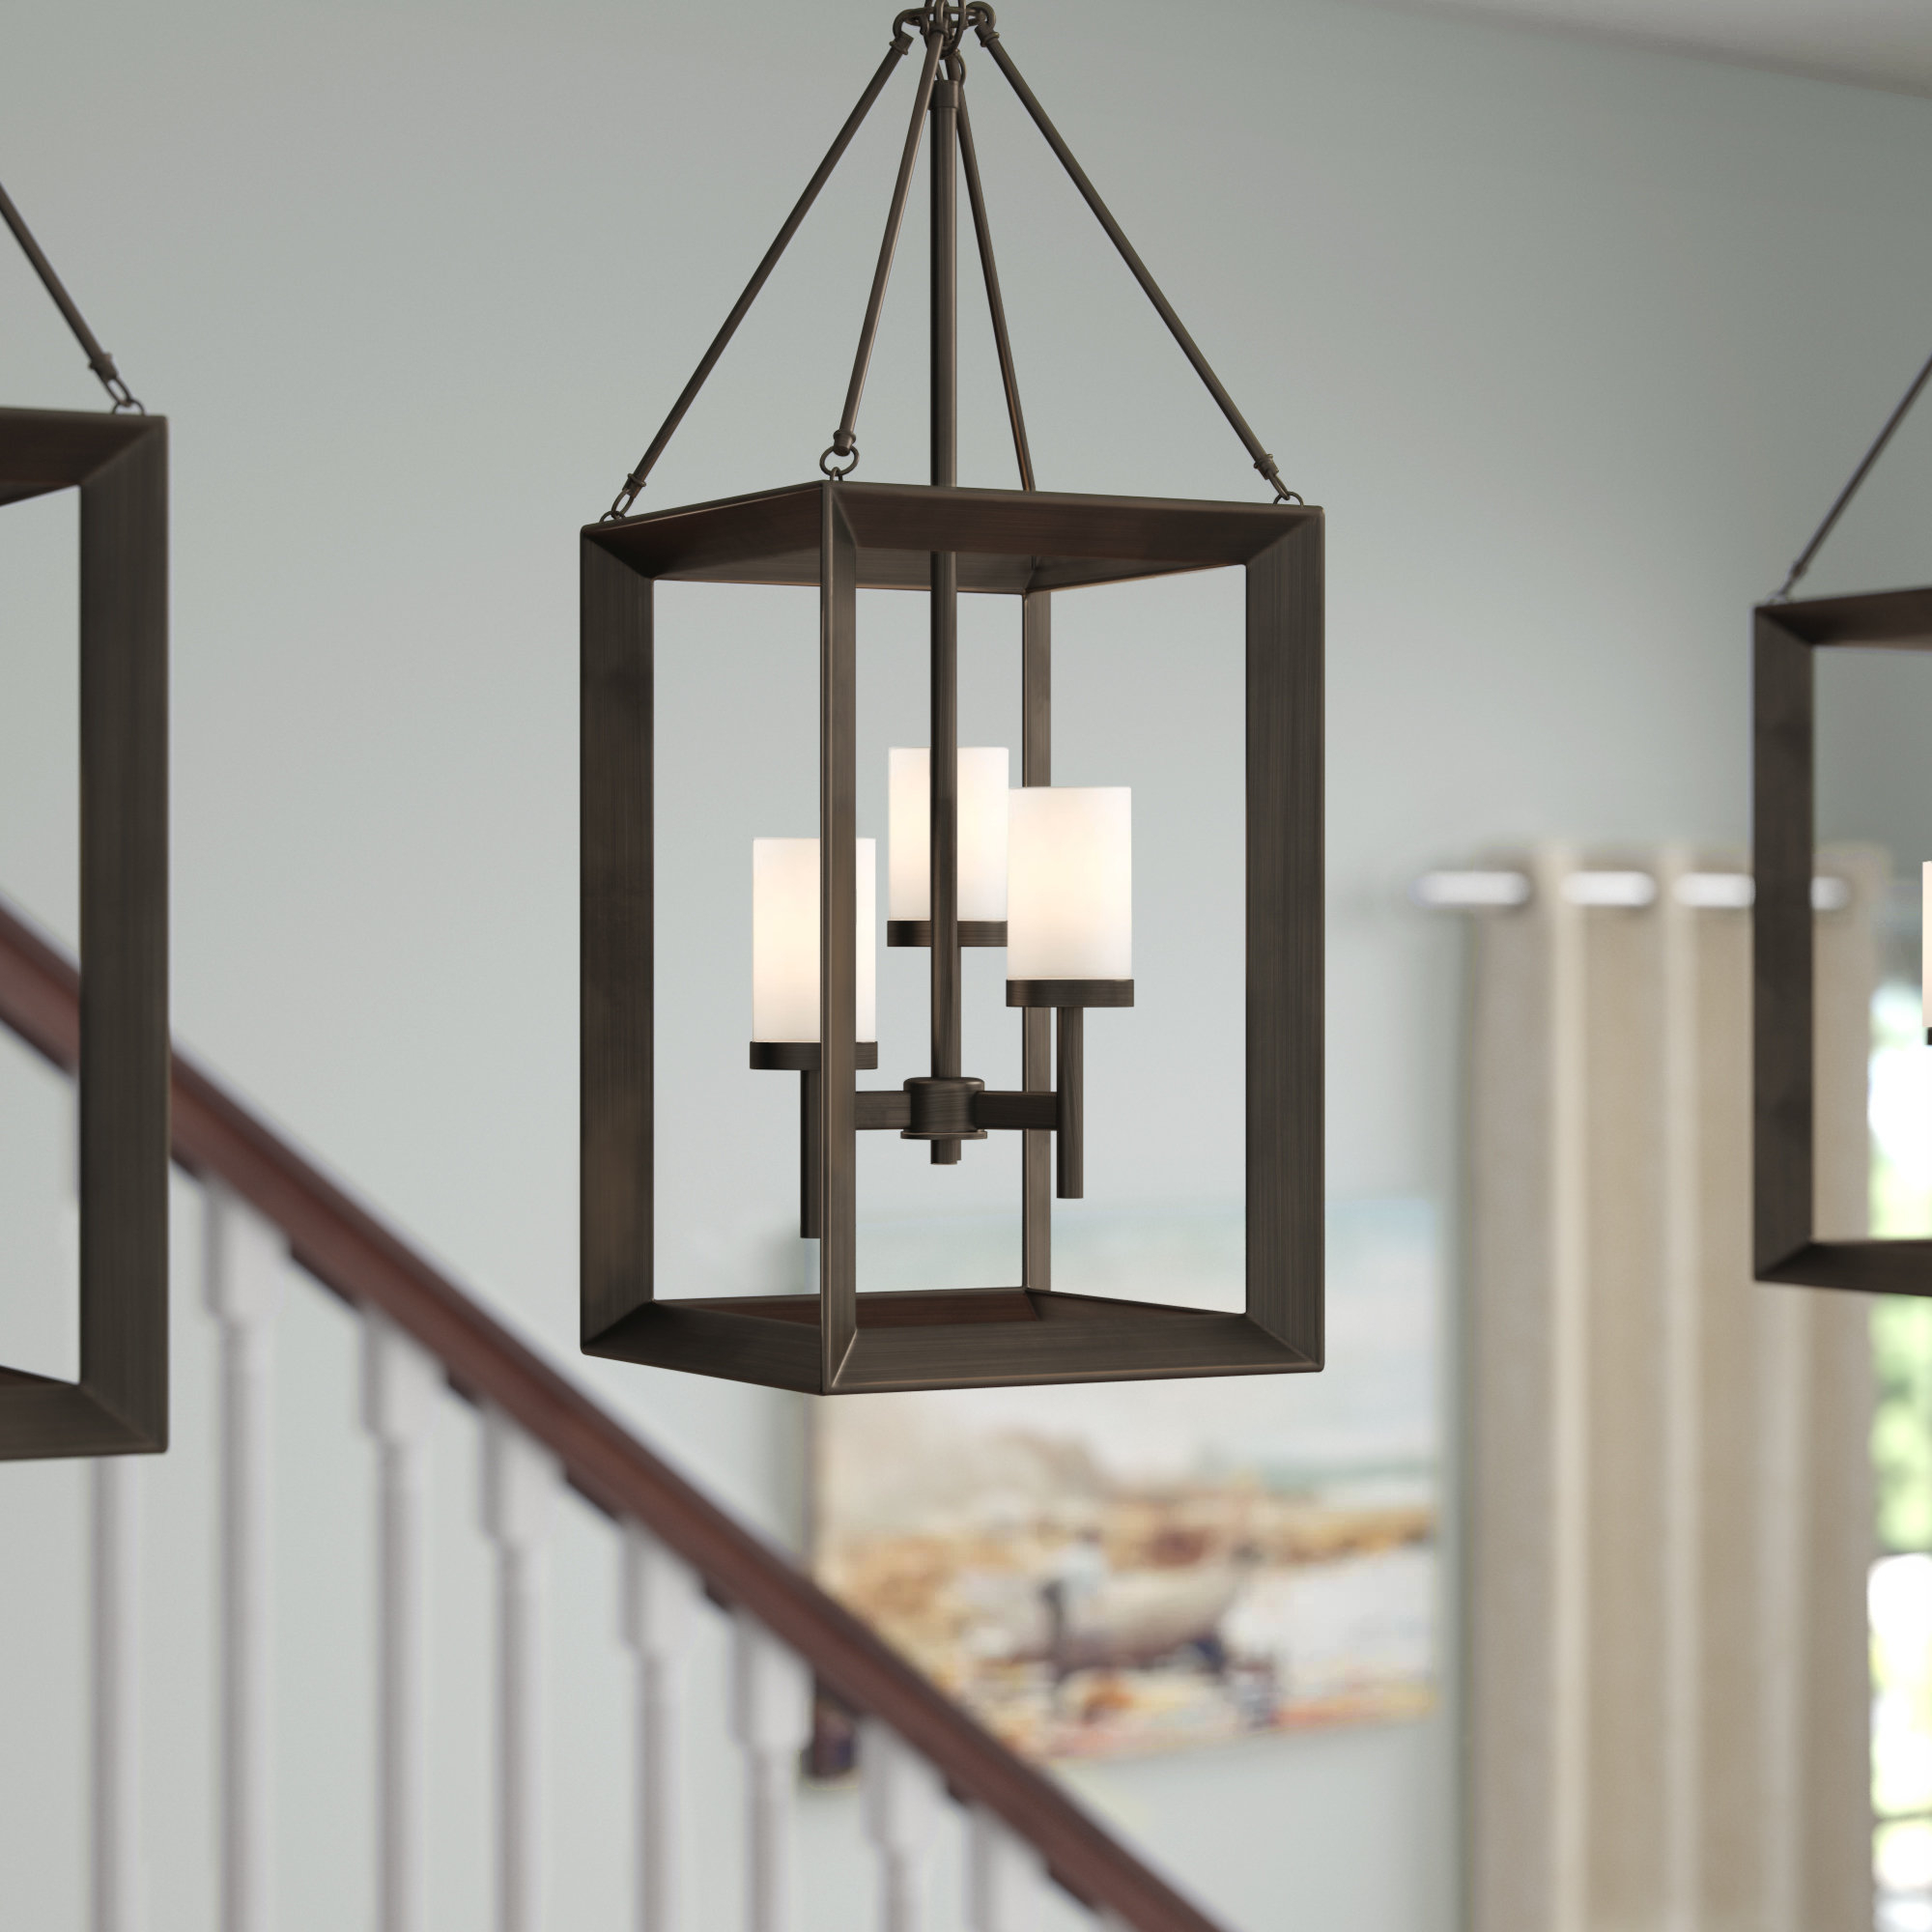 Thorne 3 Light Lantern Square Pendant With Regard To Best And Newest Odie 4 Light Lantern Square Pendants (View 23 of 25)